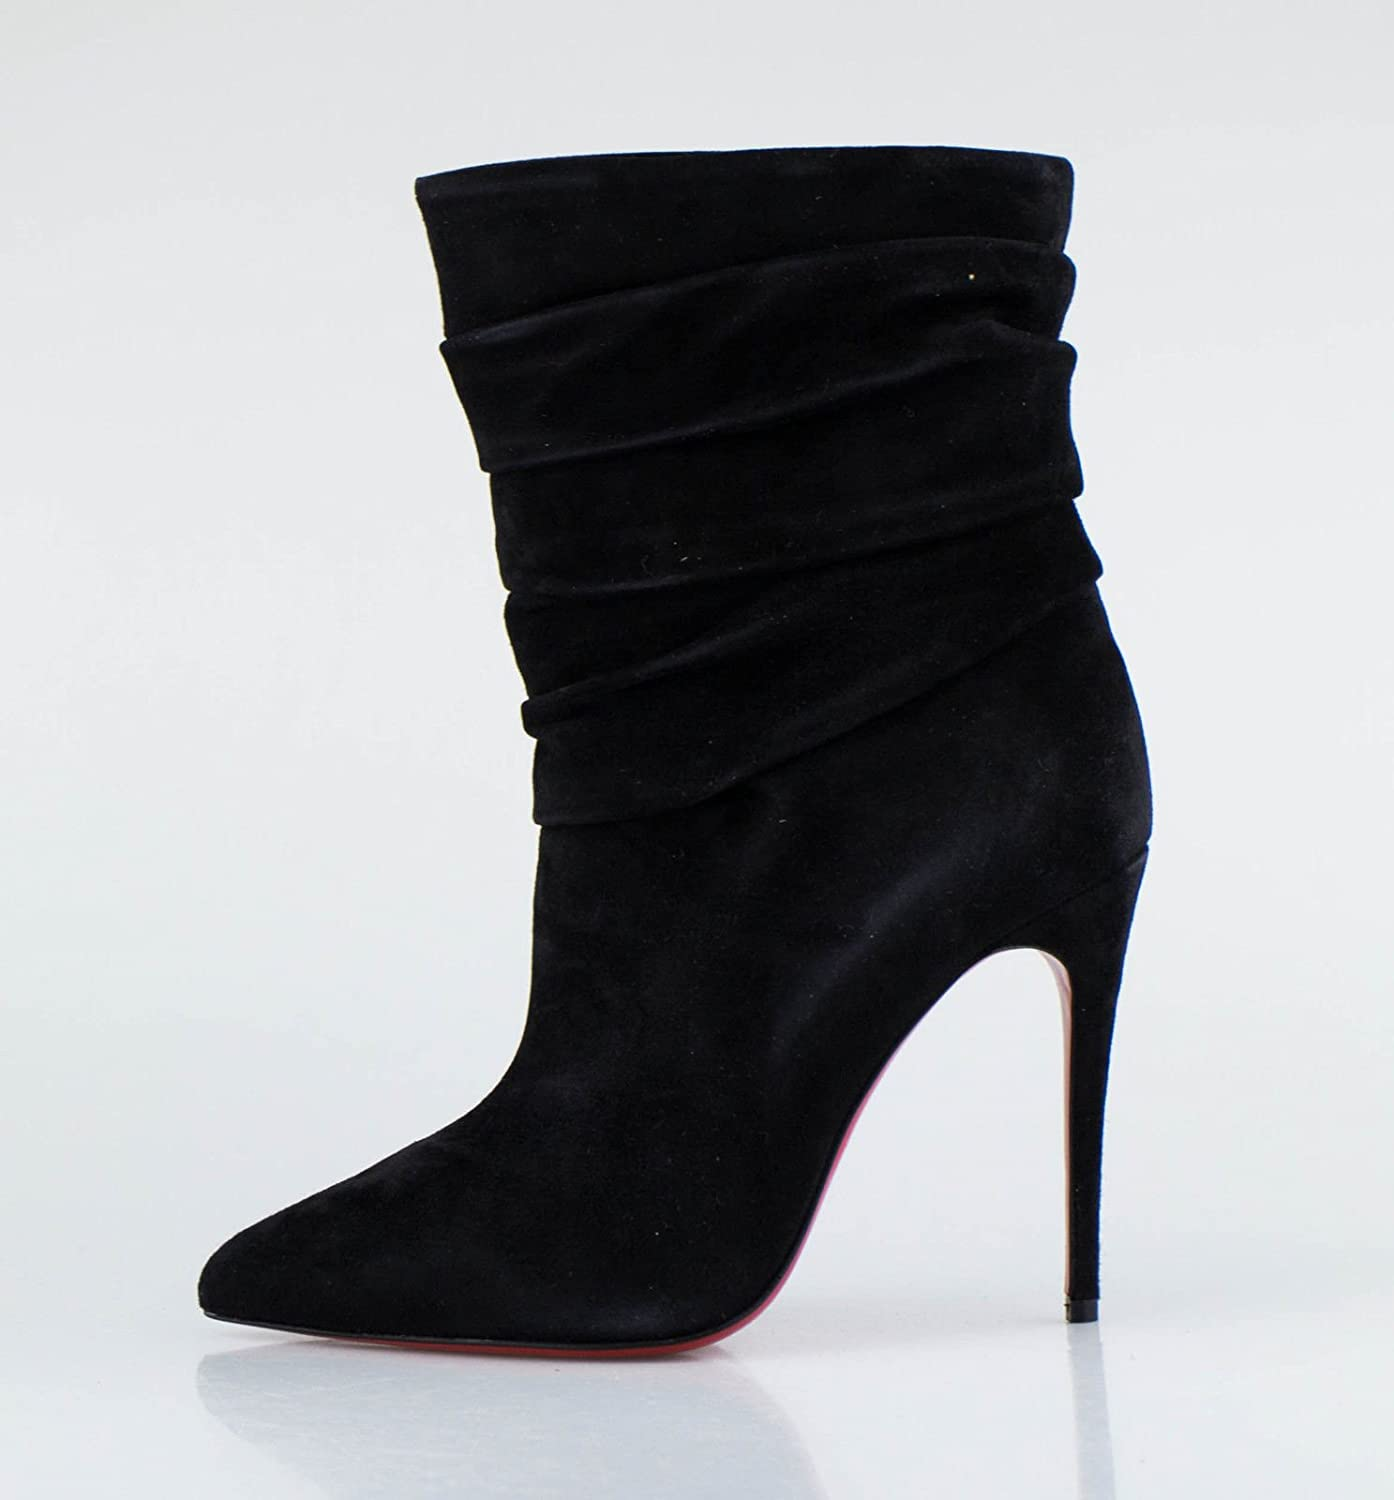 purchase cheap 90147 76044 Amazon.com : CHRISTIAN LOUBOUTIN Black Suede Ishtar Booty ...